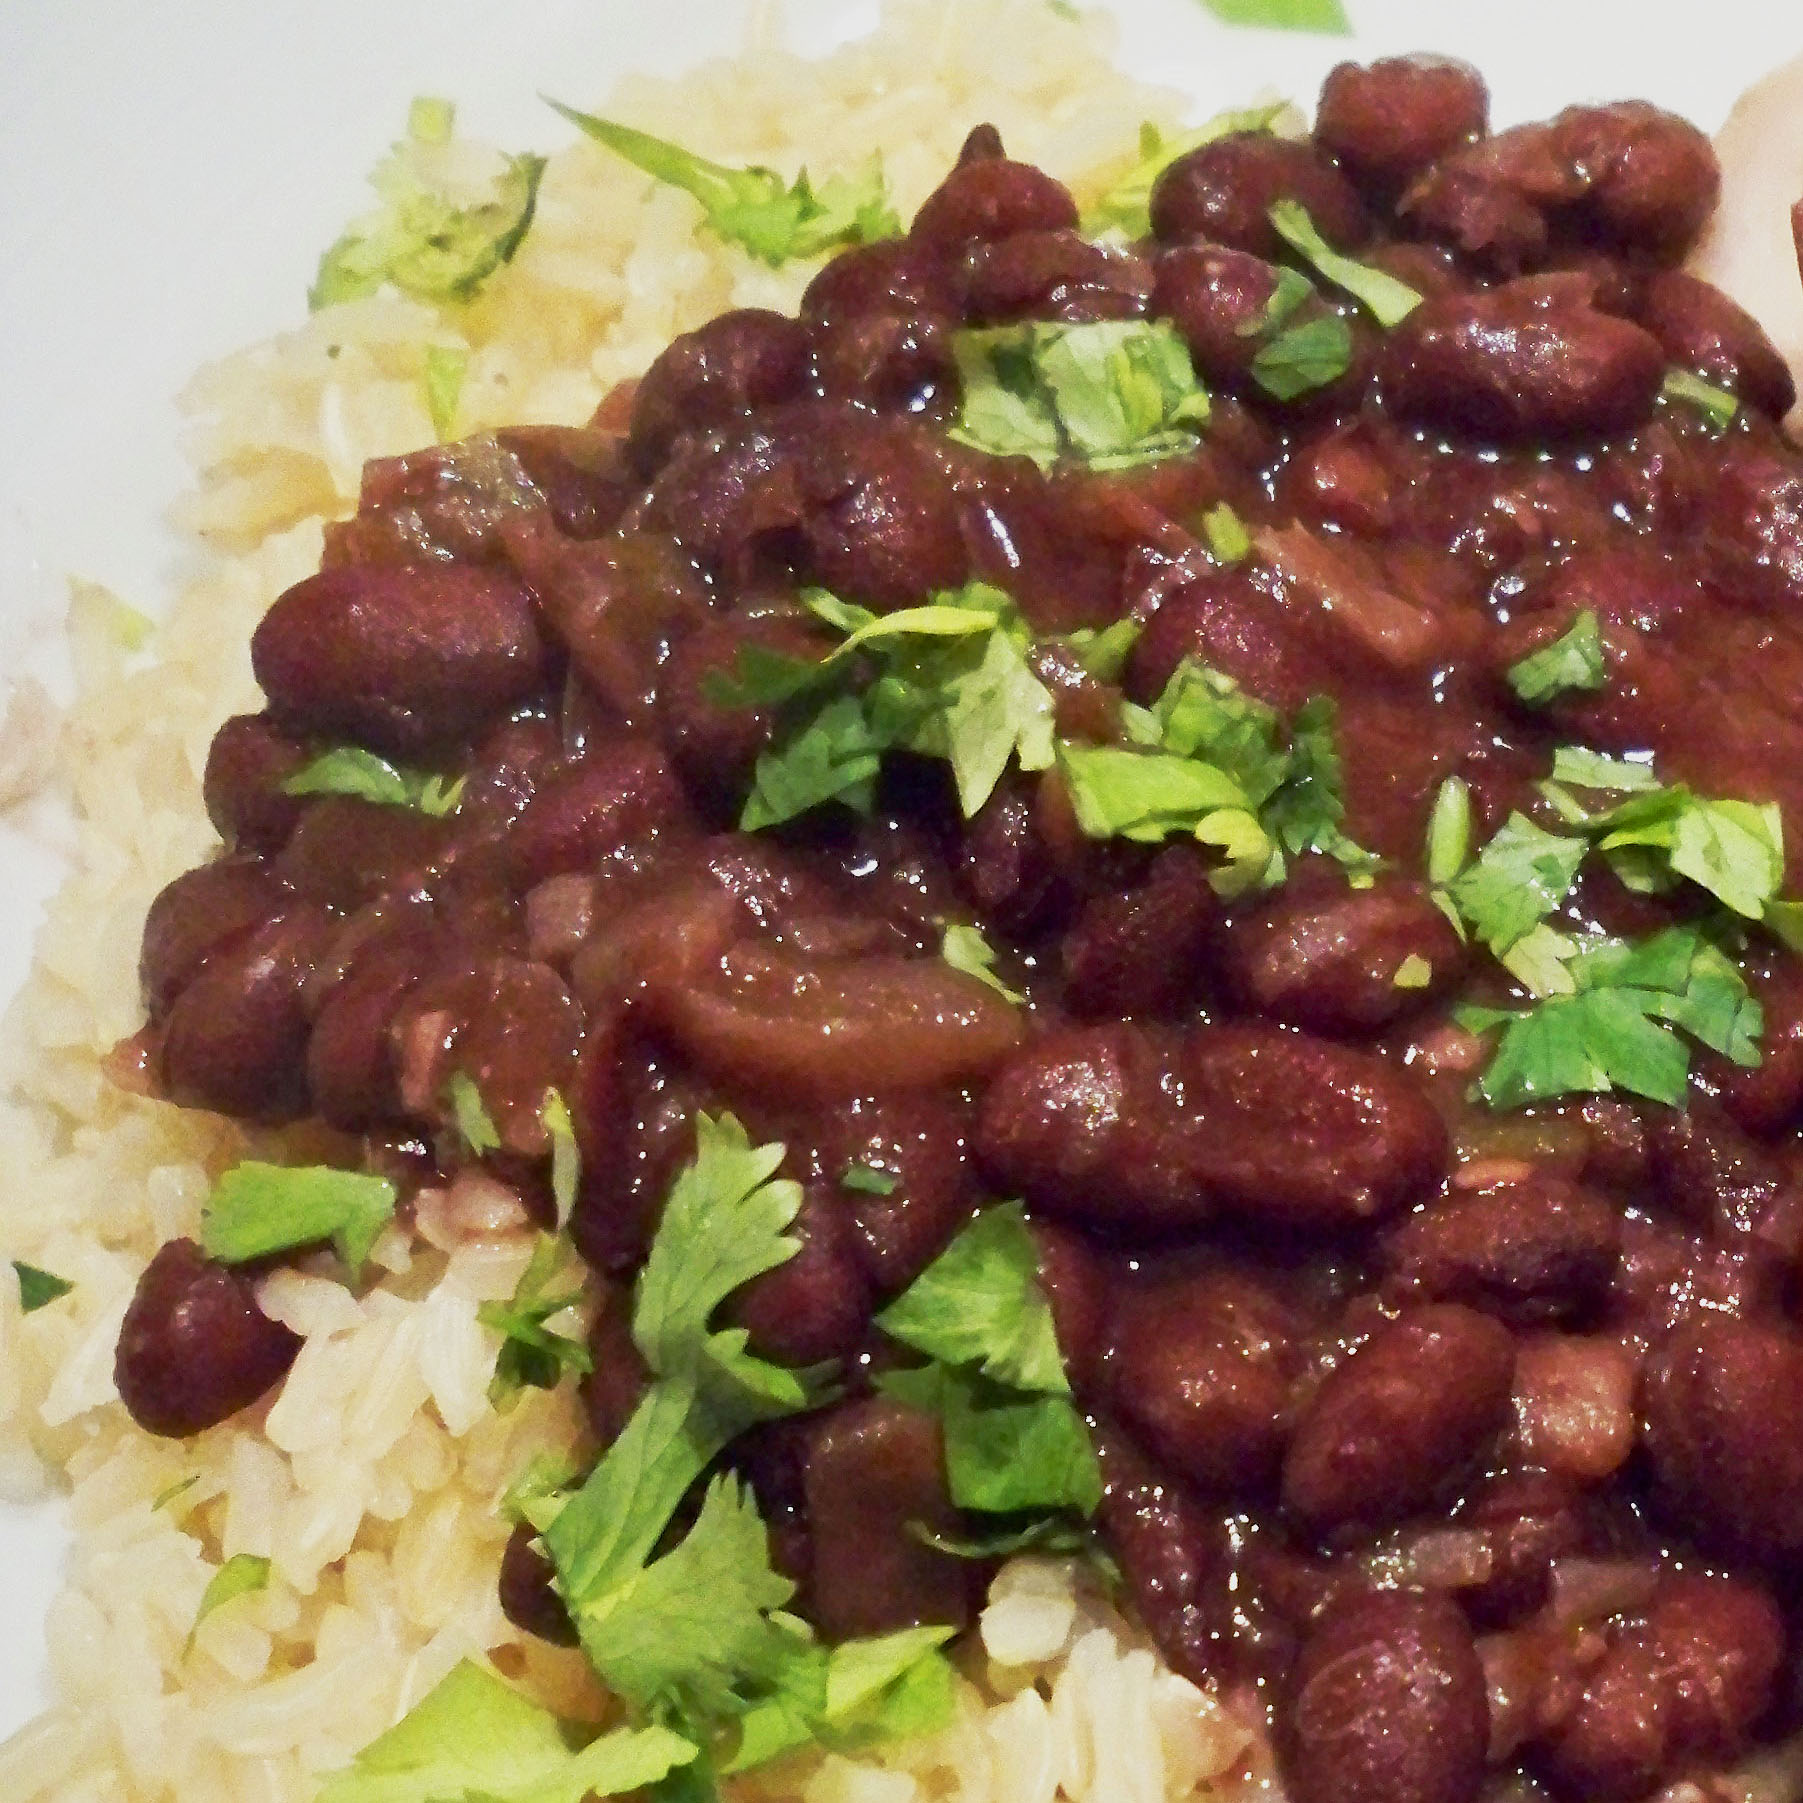 Black Beans - Frijoles Negros - Cook Better Than Most Restaurants